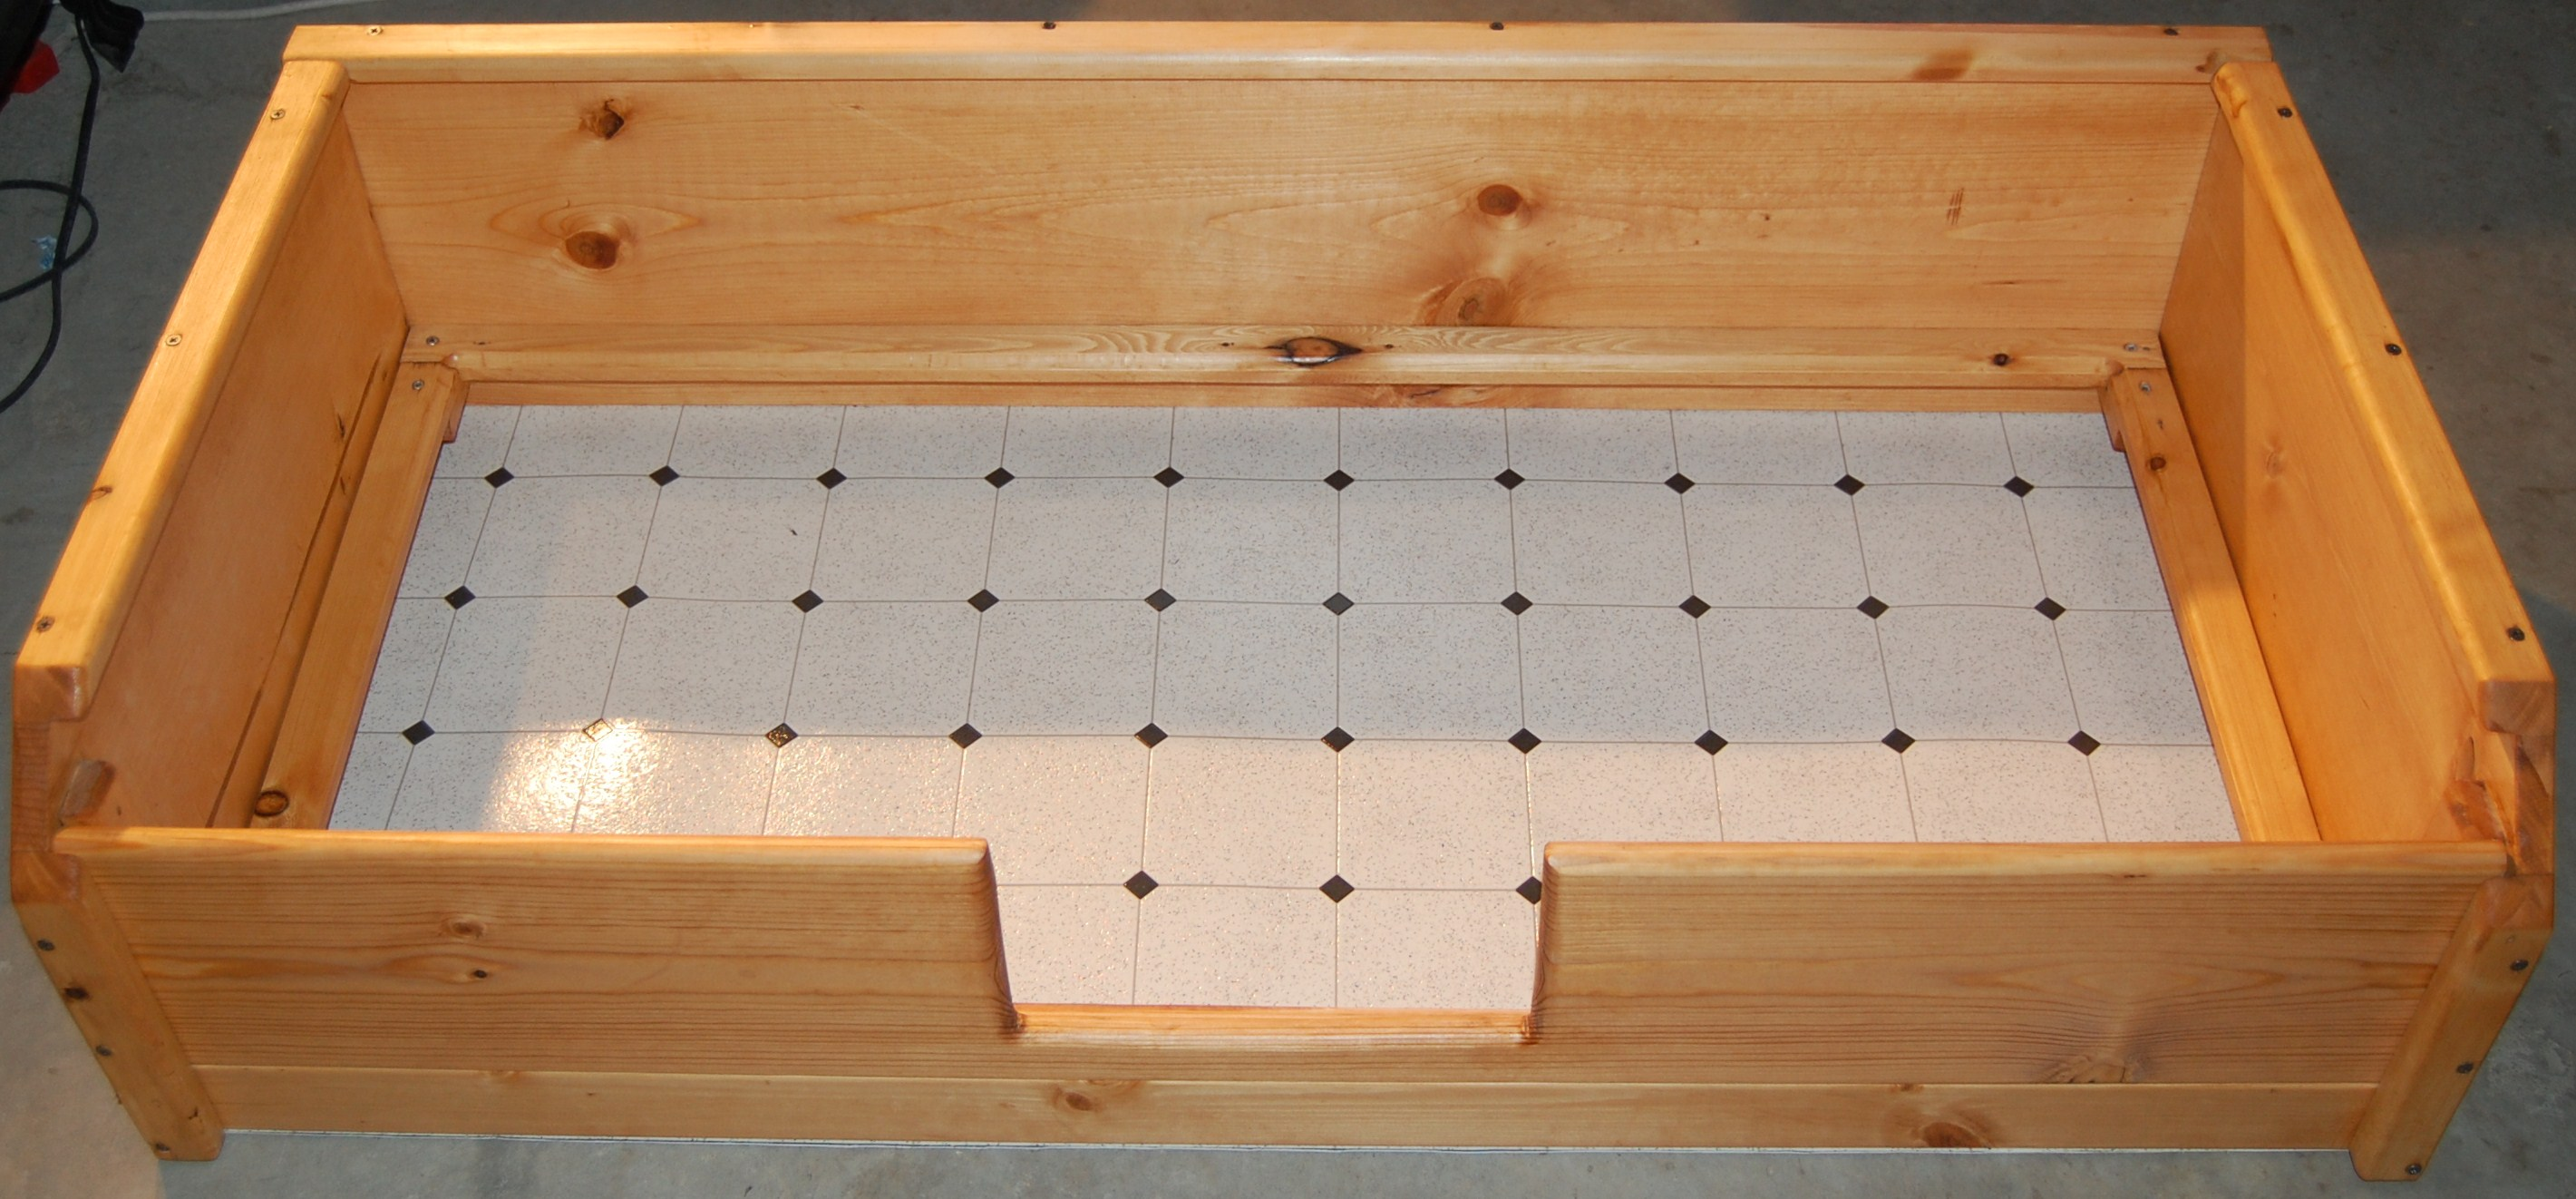 Well, Well, Whelp: Padding and Lining a Whelping Box